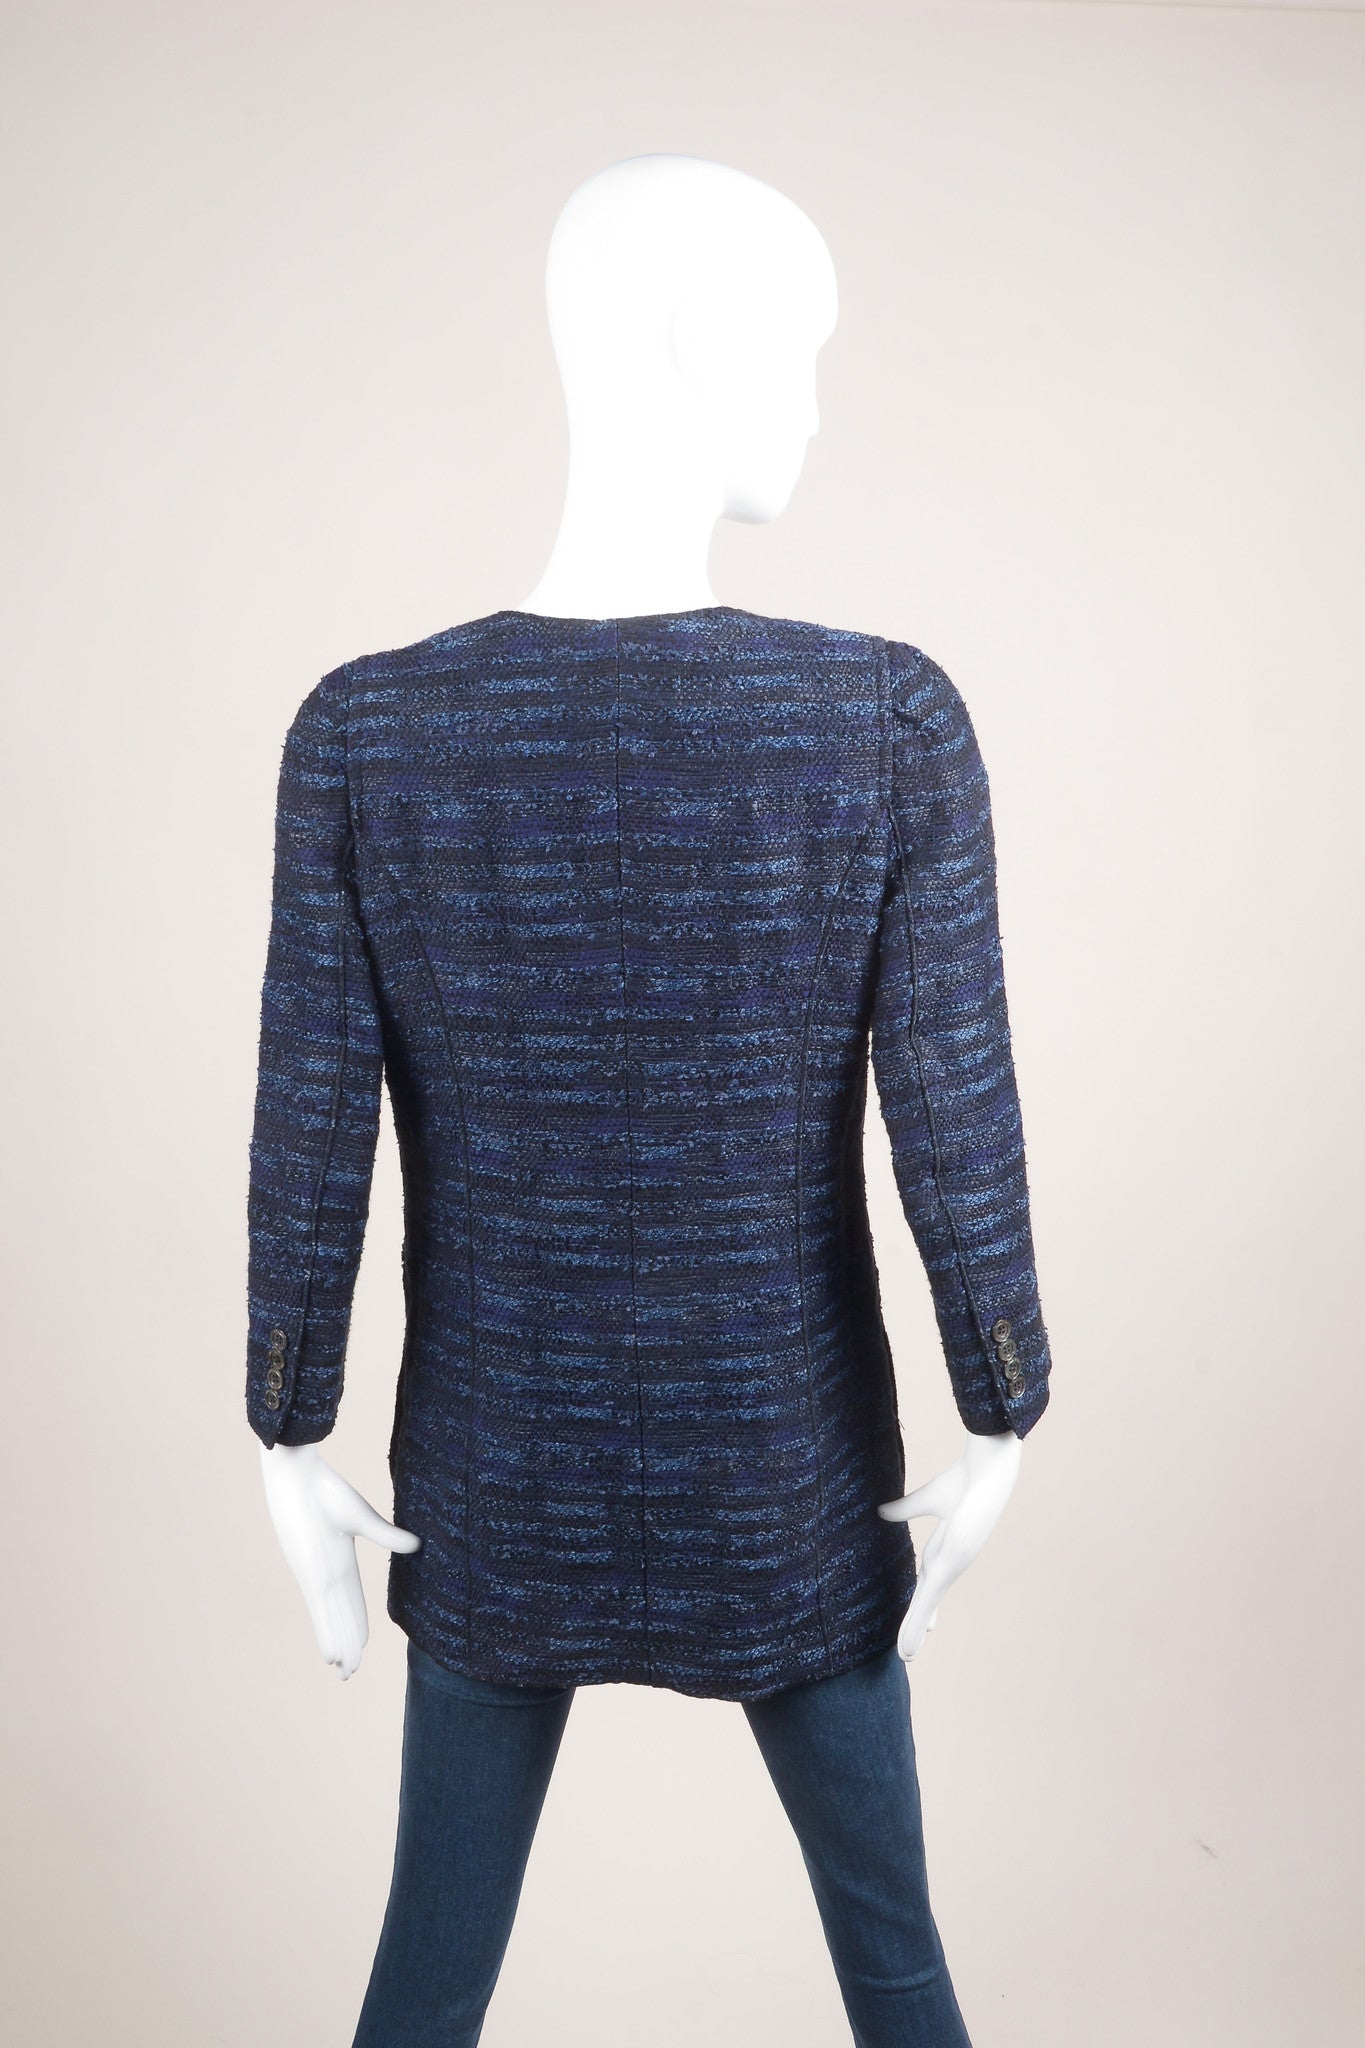 Nina Ricci Navy Blue and Black Woven Tweed Knit Long Sleeve Jacket Backview